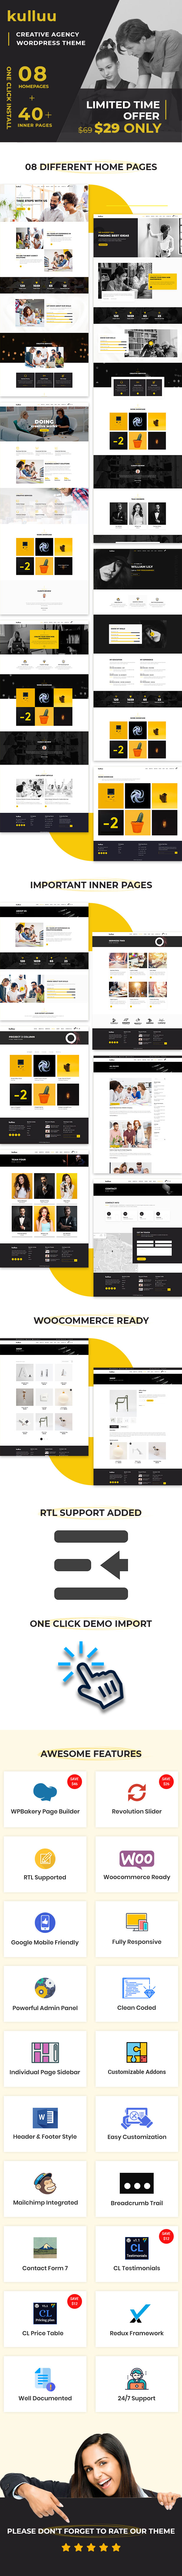 Kulluu - Creative Agency WordPress Theme - 4